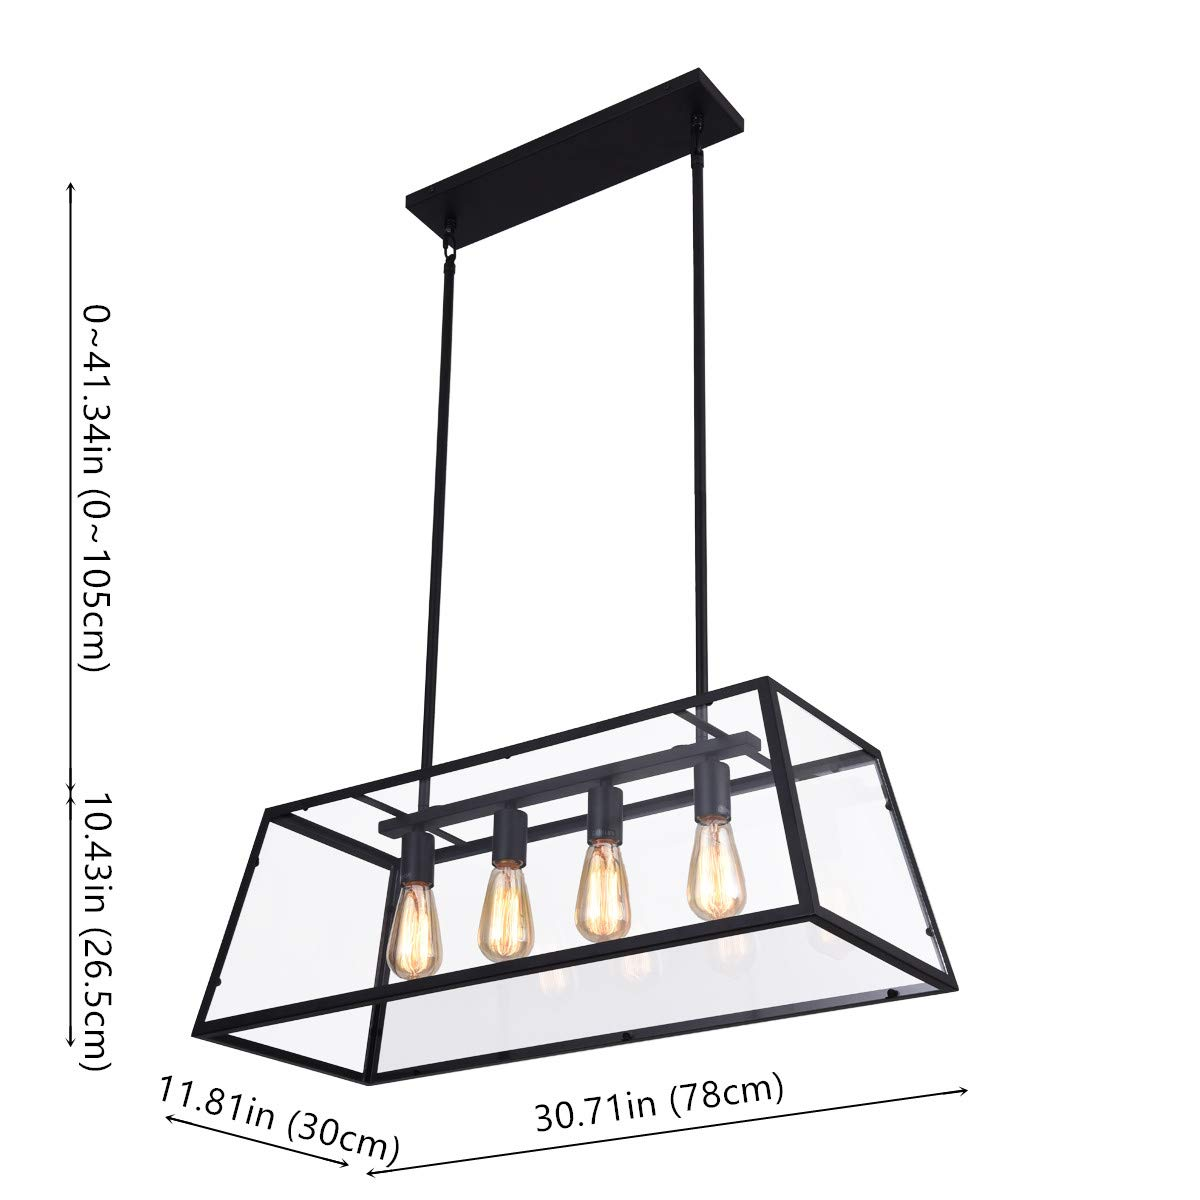 mirrea 4-Light Kitchen Island Pendant Matte Black Shade with Clear Glass Panels Modern Industrial Chandelier for Dinning Room by mirrea (Image #7)